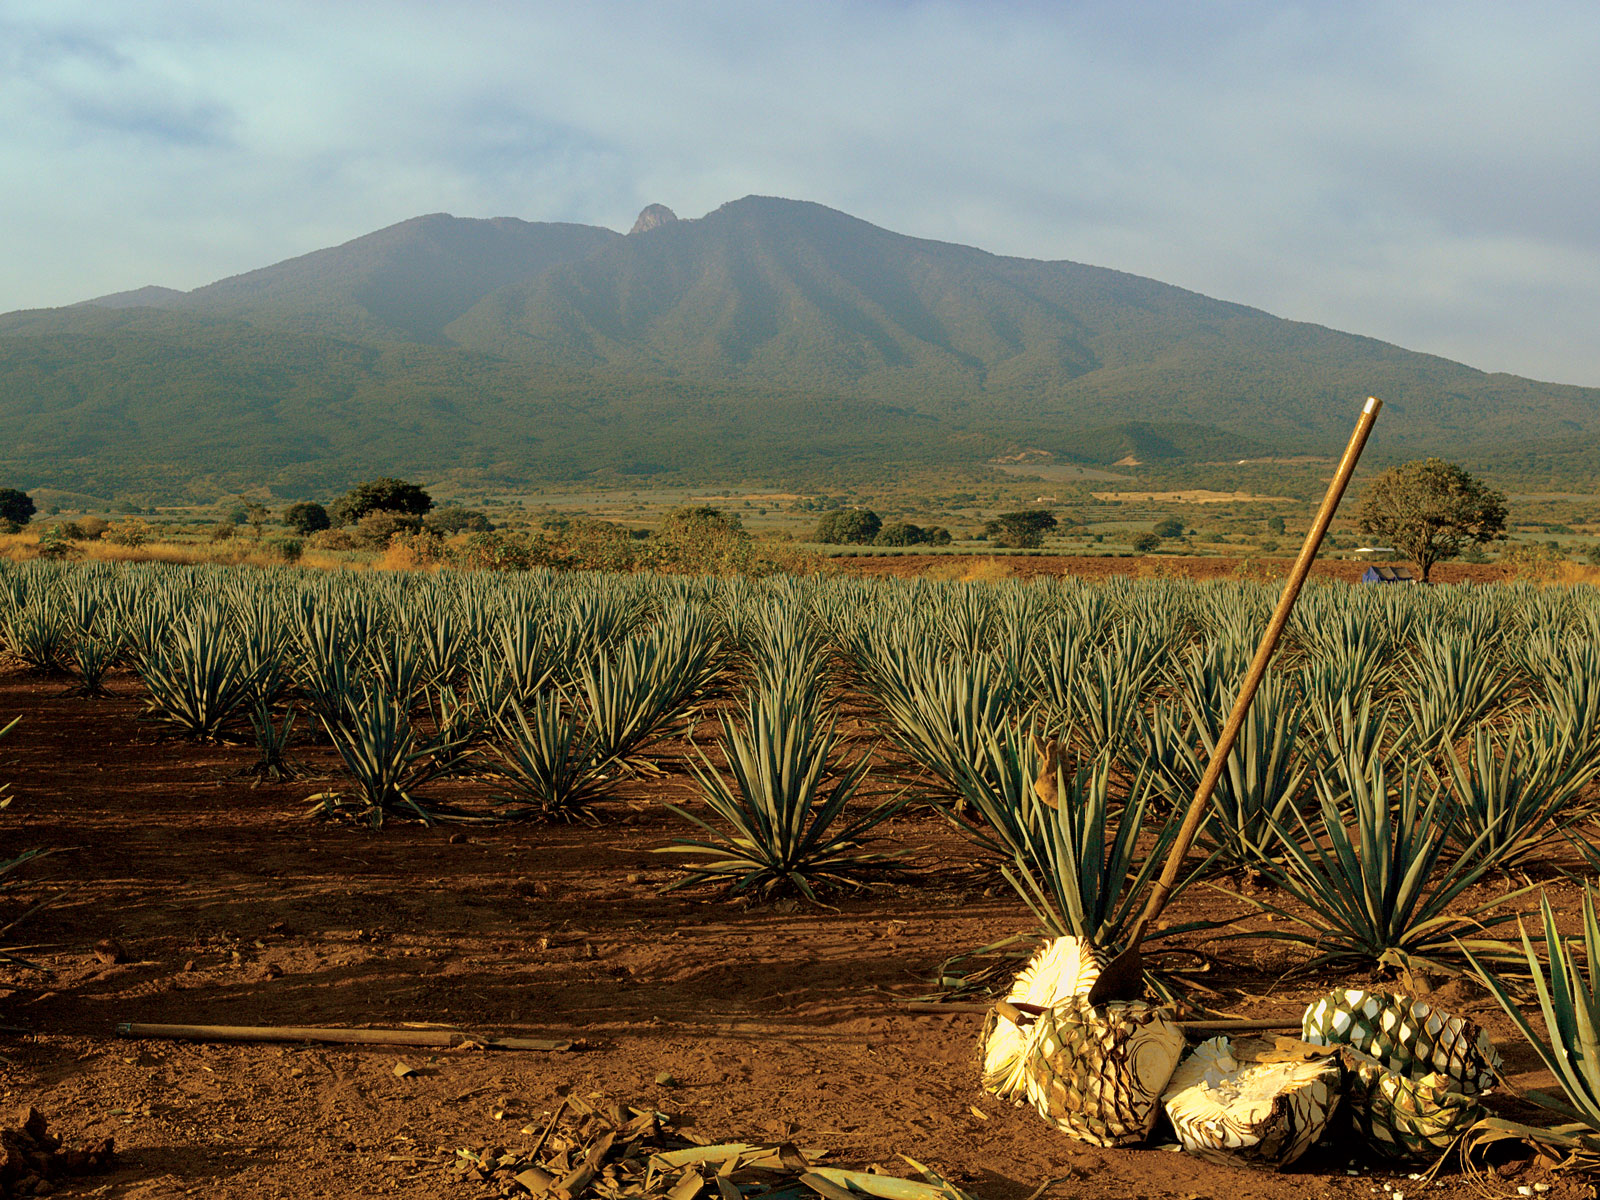 A Trip Along the Tequila Trail in Jalisco, Mexico